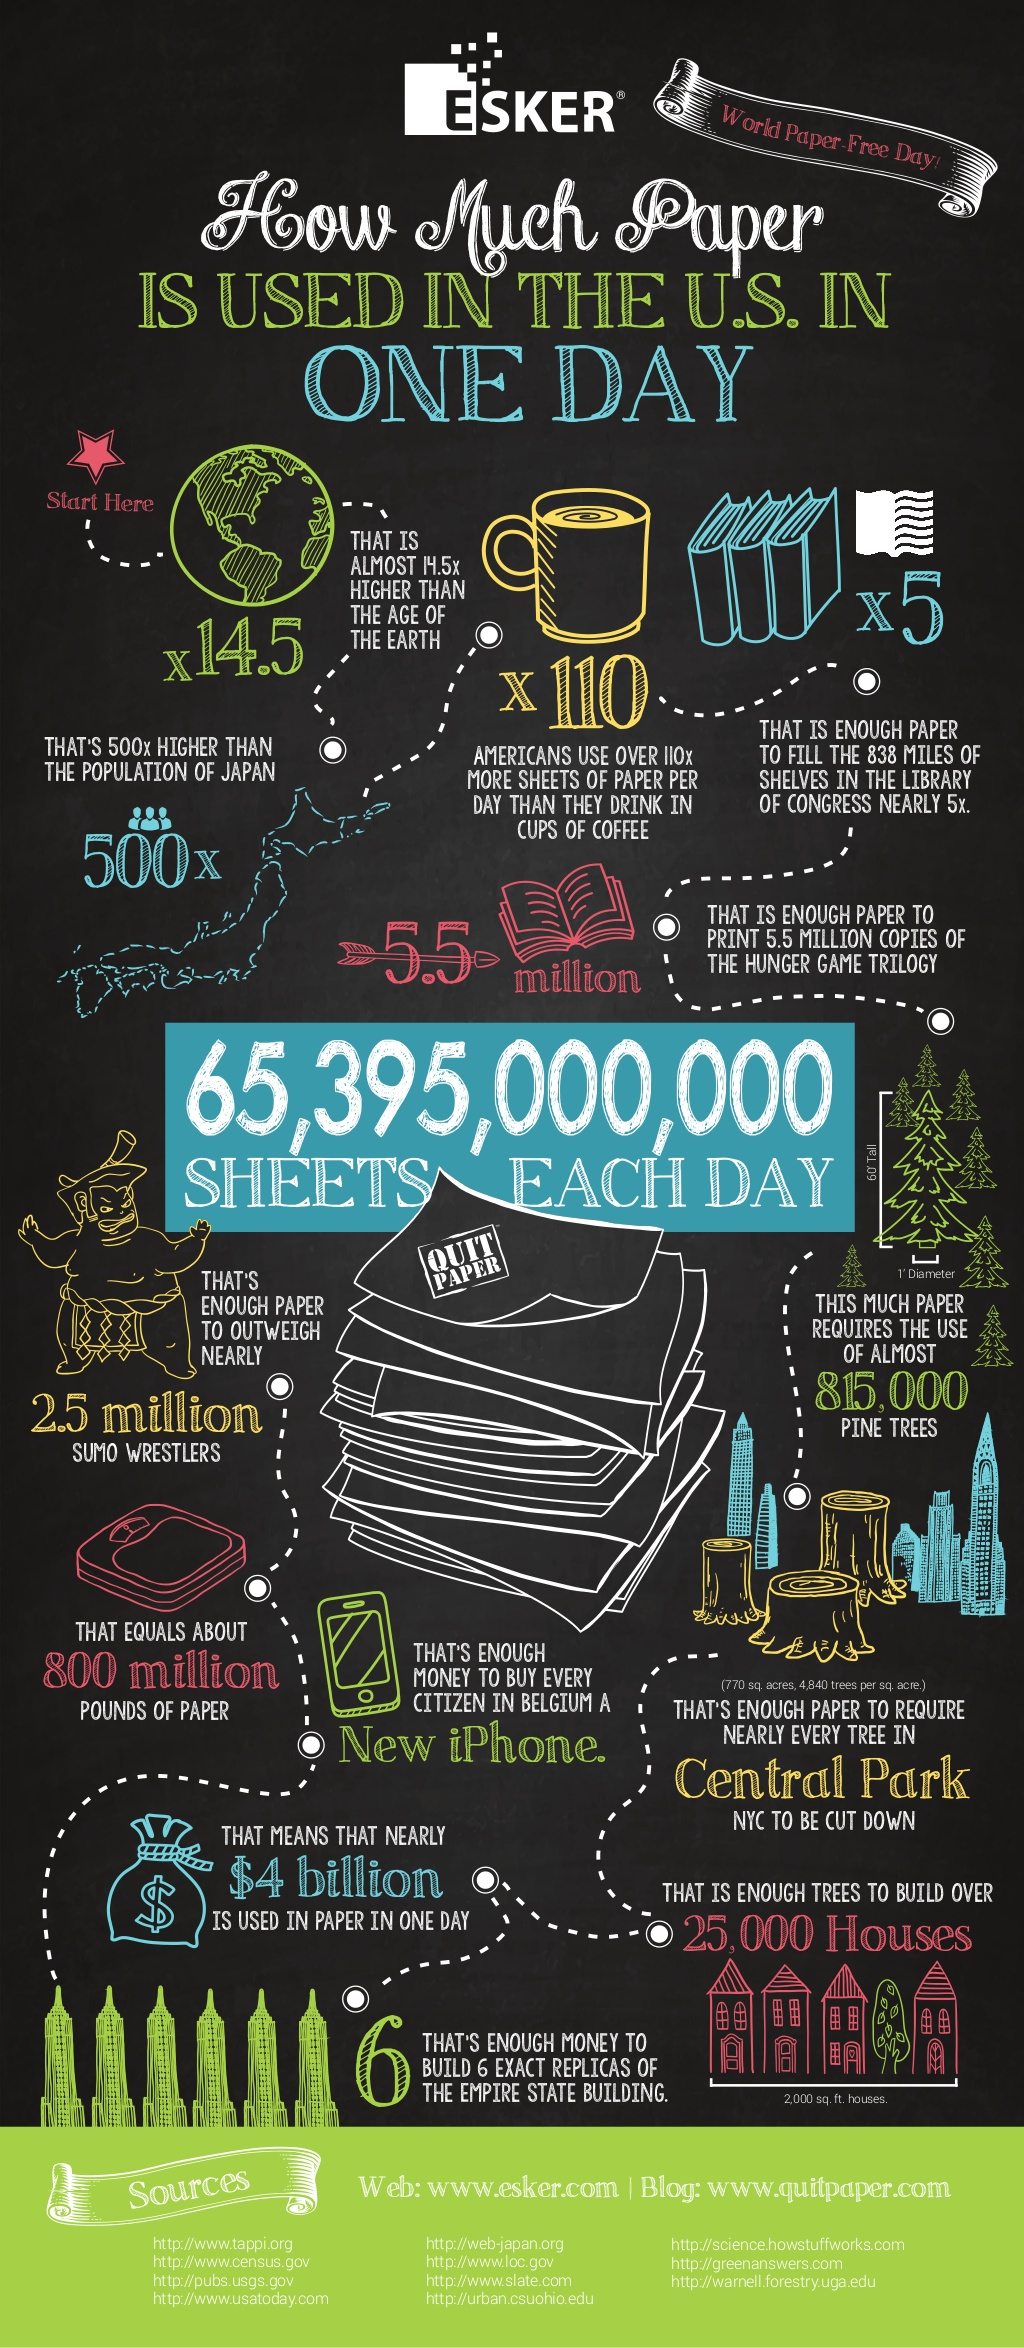 infographic-how-much-paper-is-used-in-the-us-in-one-day-1-1024